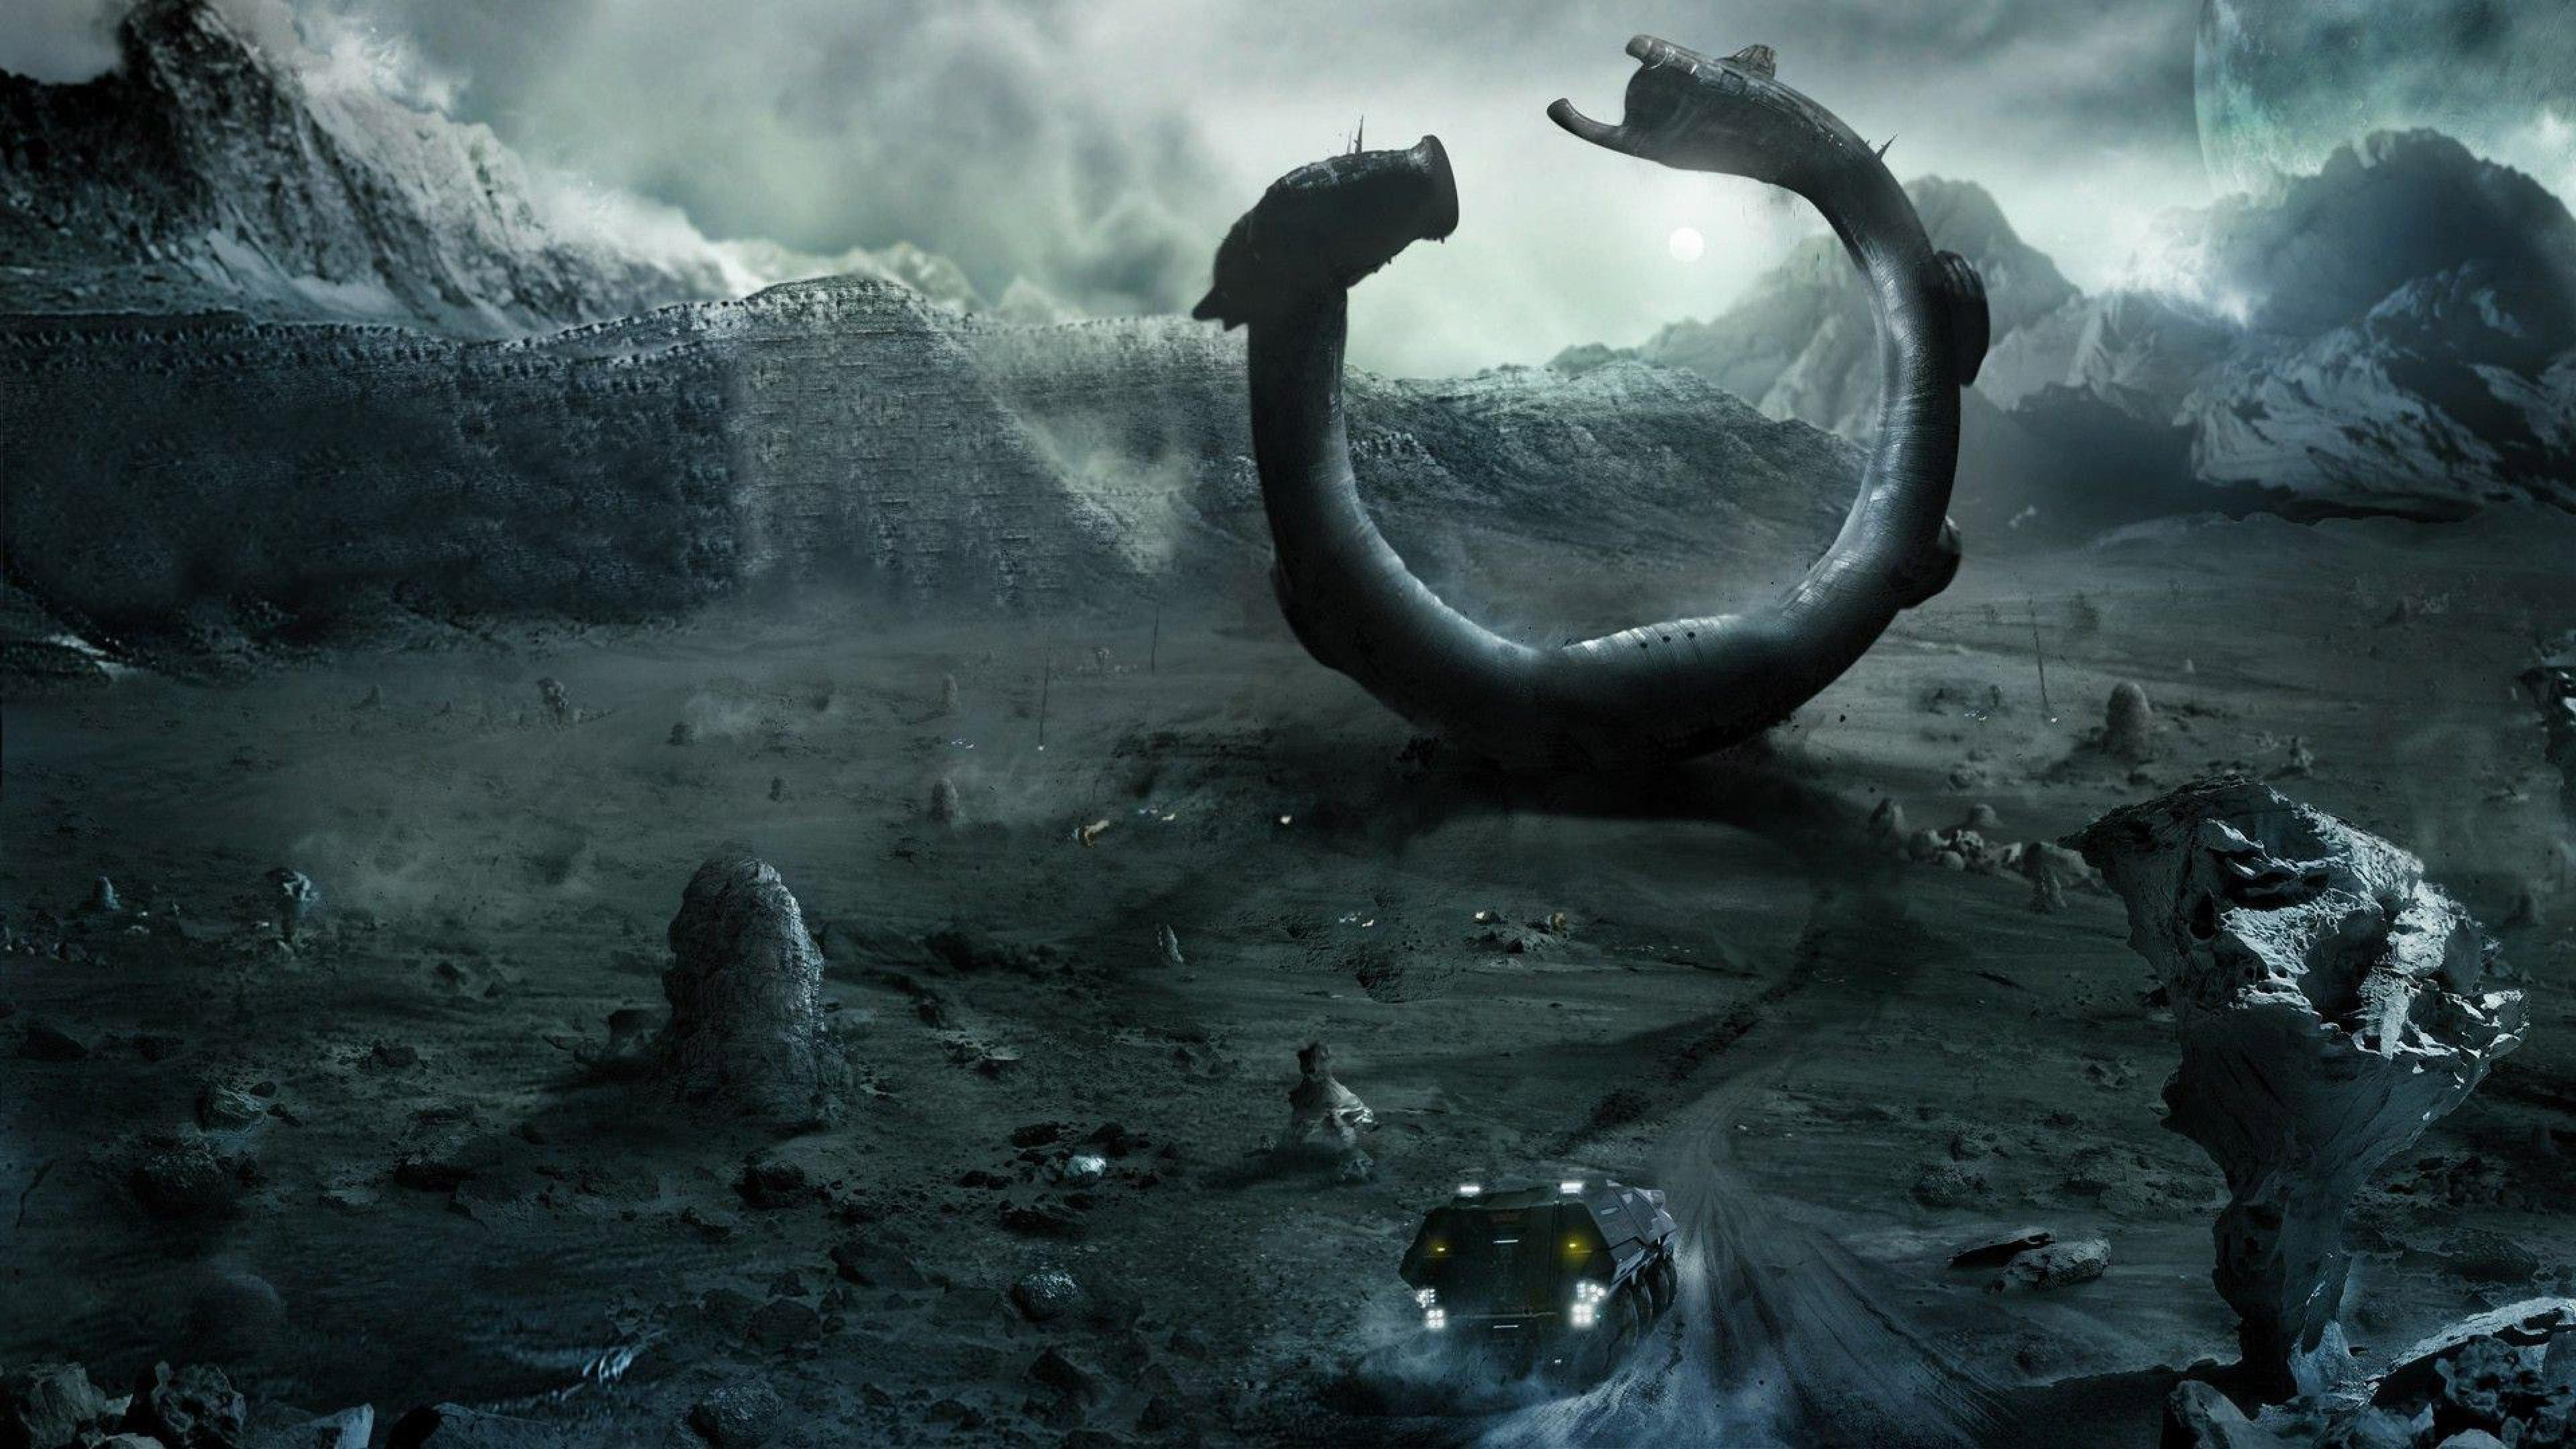 Movies Prometheus HD Wallpapers, Desktop Backgrounds, Mobile